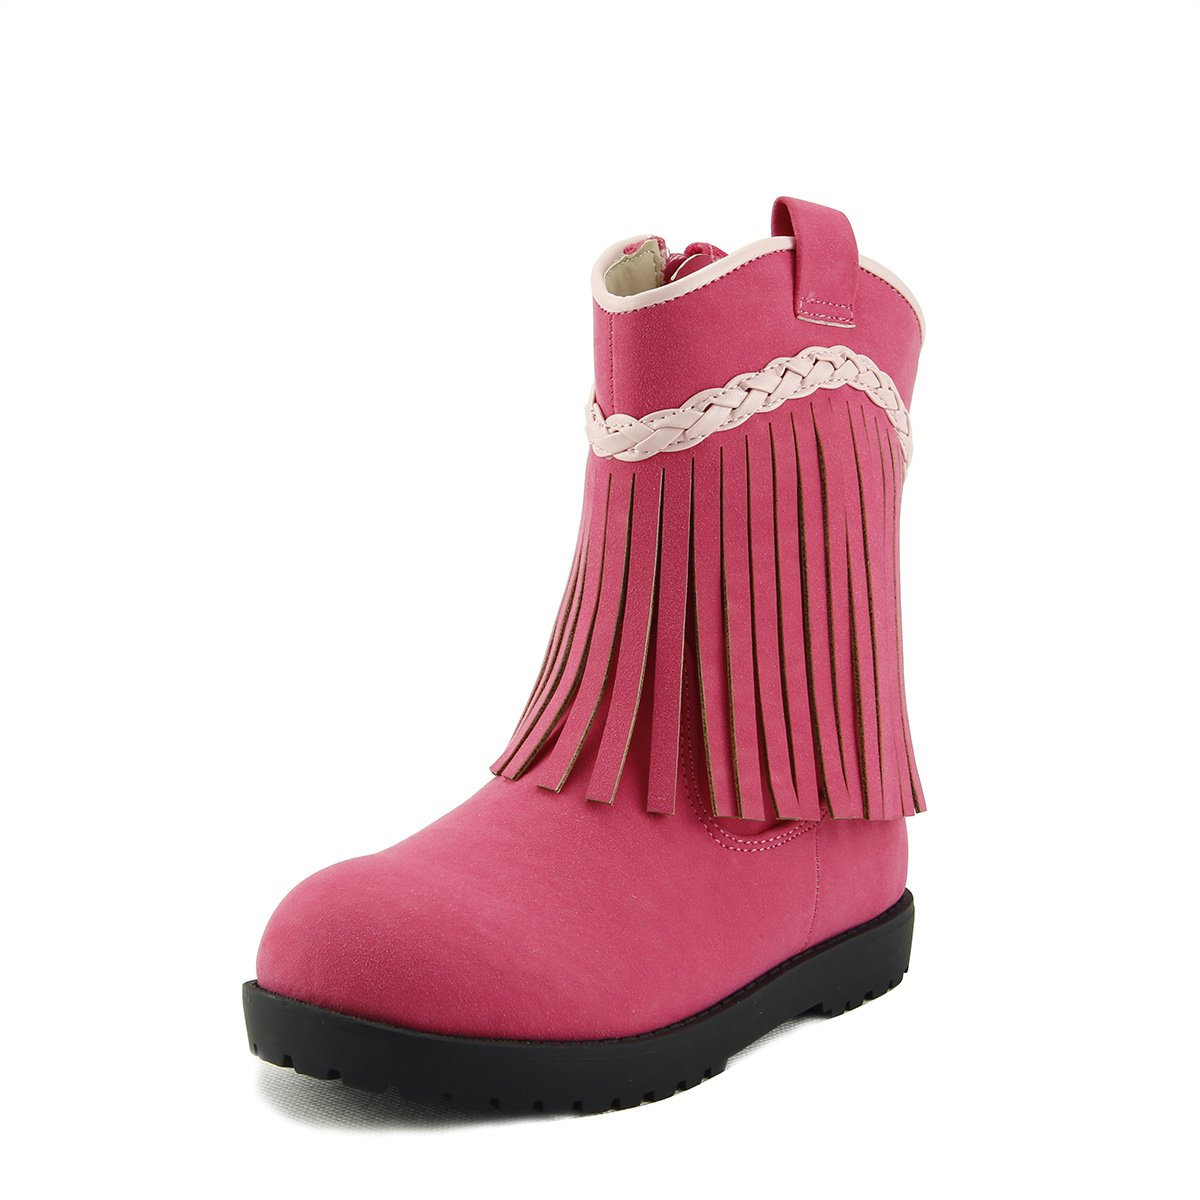 Western CowGirls Style Moccas Girl's Fringe Short Boots Toddler Little Kids 3 colors (07, Rose Pink) by SKY HIGH (Image #1)